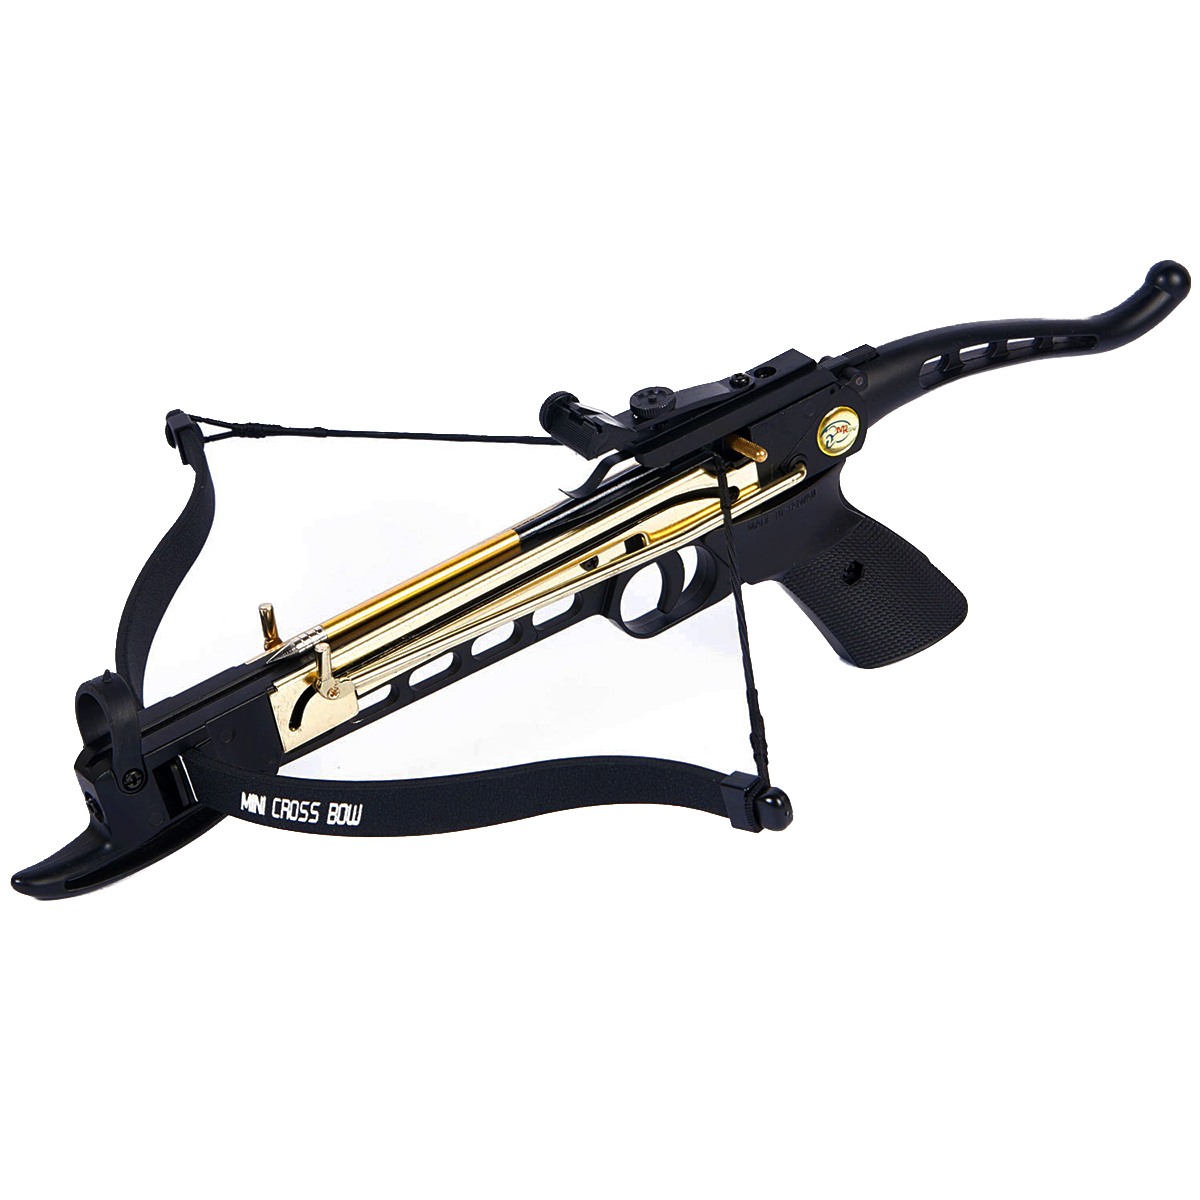 iGlow 80 lb Black / Camouflage Aluminum Self Cocking Hunting Pistol Crossbow Archery Bow +15 Bolts / Arrow +2 Strings 50